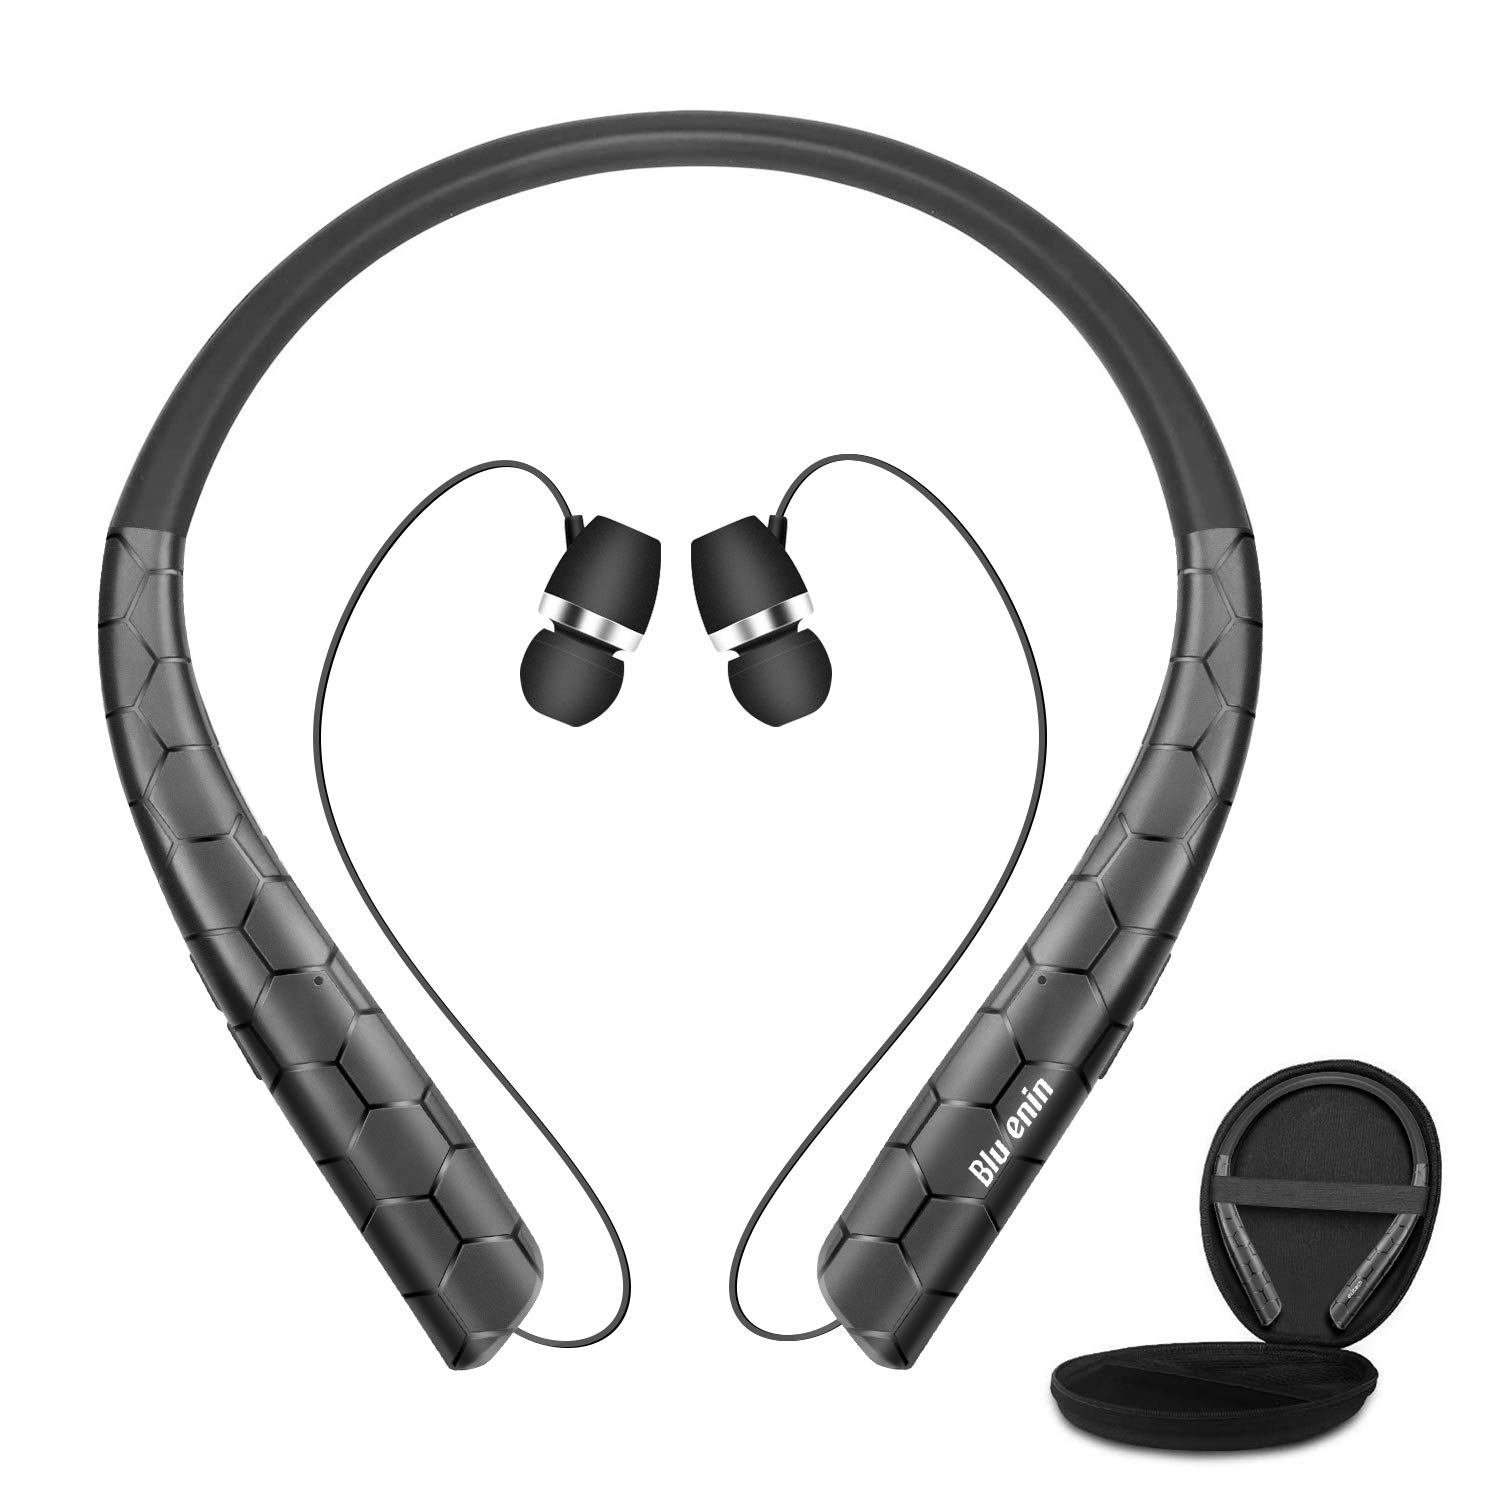 Bluenin Bluetooth Headphones with Carrying Case, Bluetooth 5.0 Wireless Neckband Headset with Retractable Earbuds,16 Hrs Playtime Sports Sweatproof Noise Cancelling Earphones with Mic Black